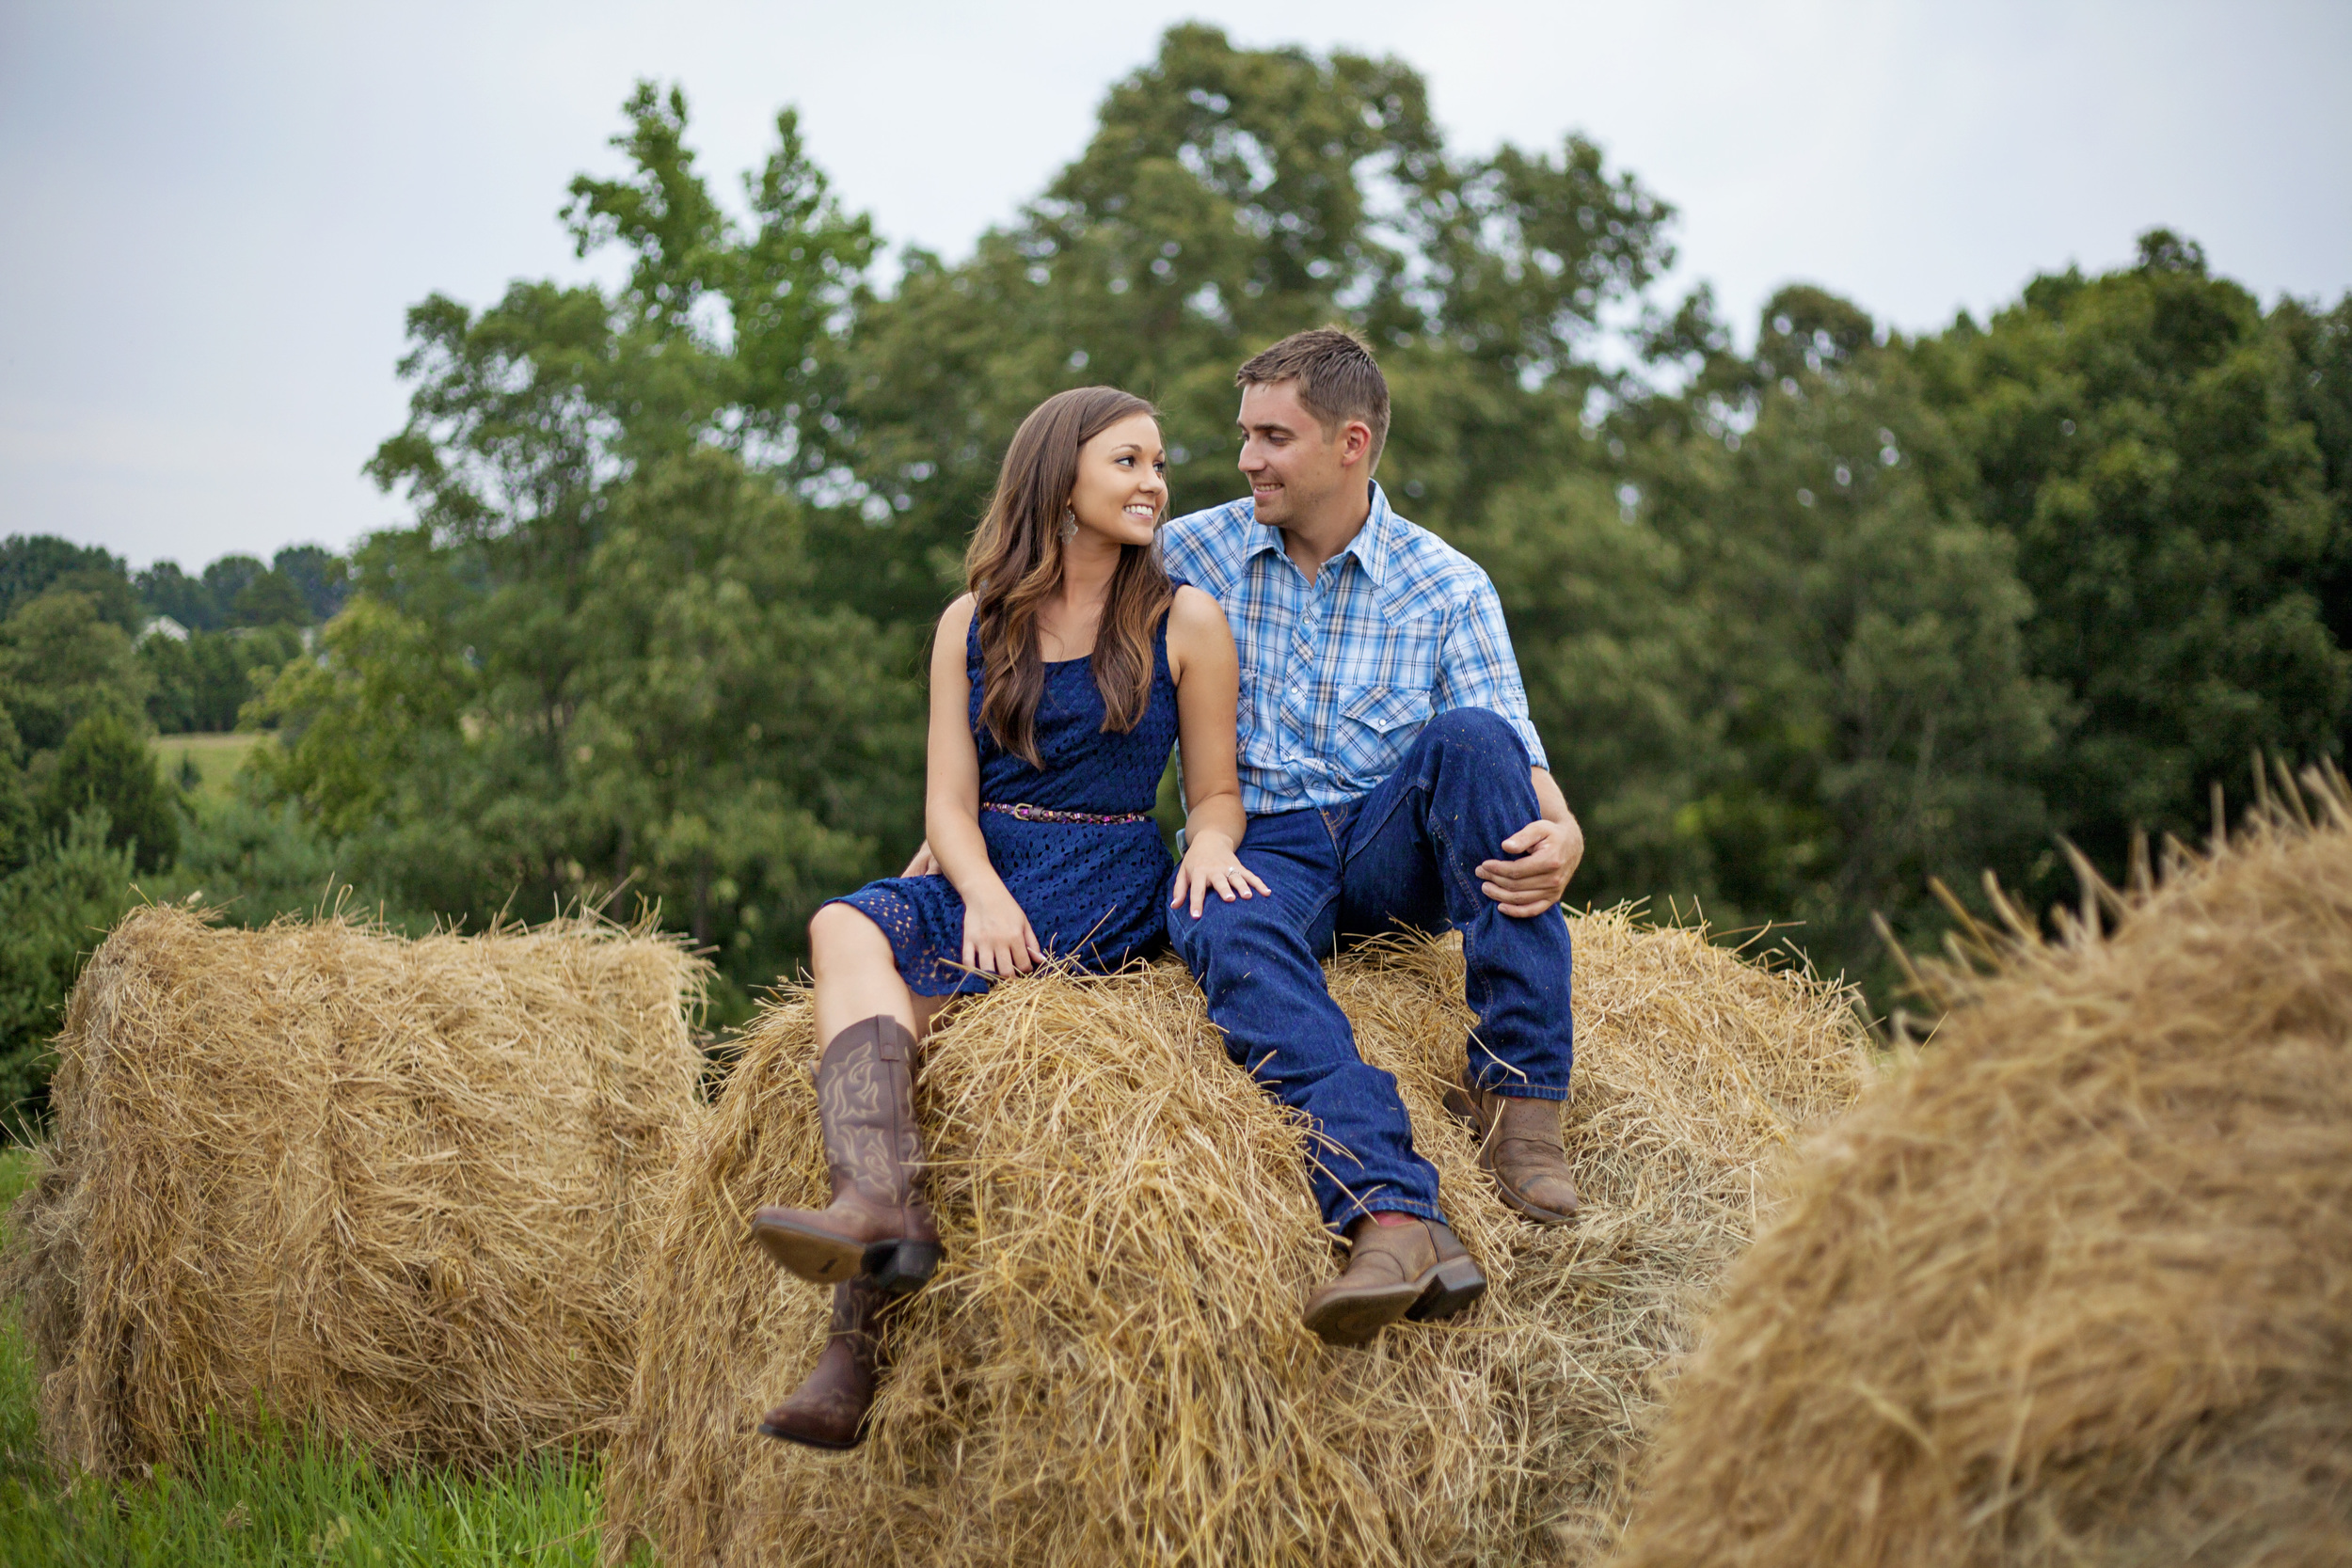 High_County_Photographers_Engagement_Wedding_Photography.jpg